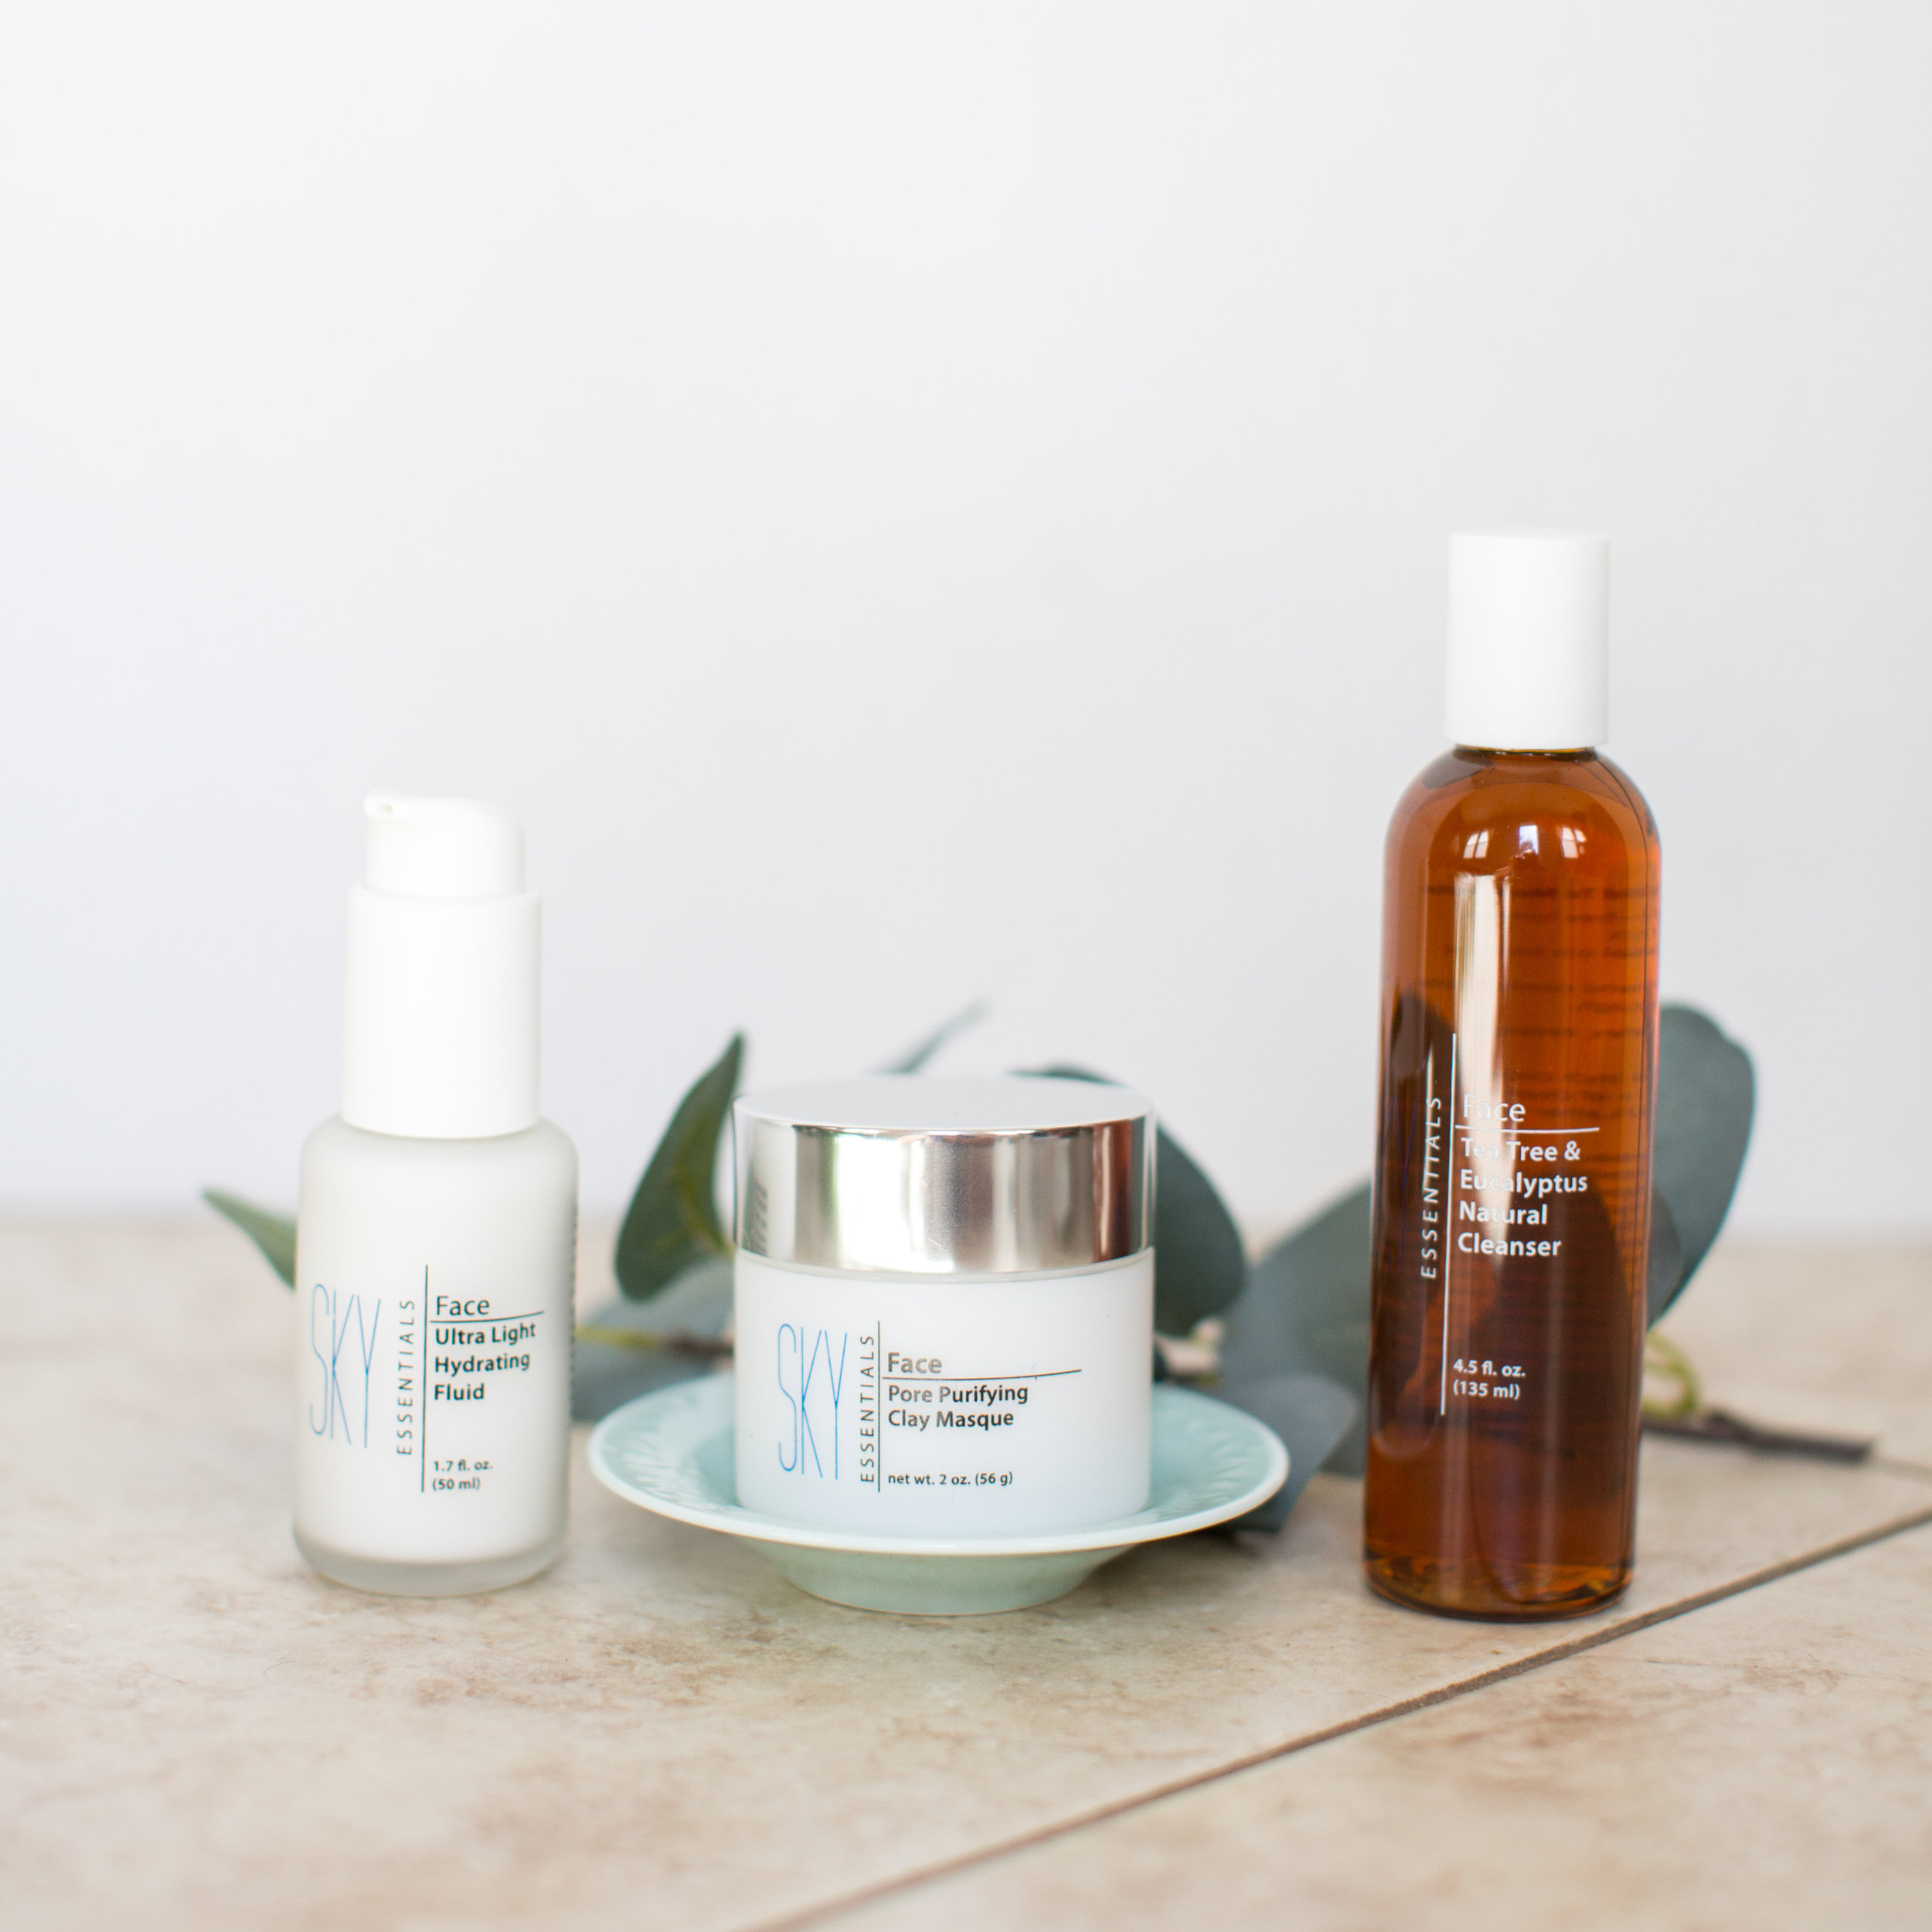 For many years' women have done what they thought was the best way to take care of their skin, from the outside only, using cleansers, moisturizers and other products to  achieve a healthy glow . Skincare has now taken a different, more holistic approach, with ingredients that produce healthy skin from the inside out. #DIYskincare #antiaging #glowingskin